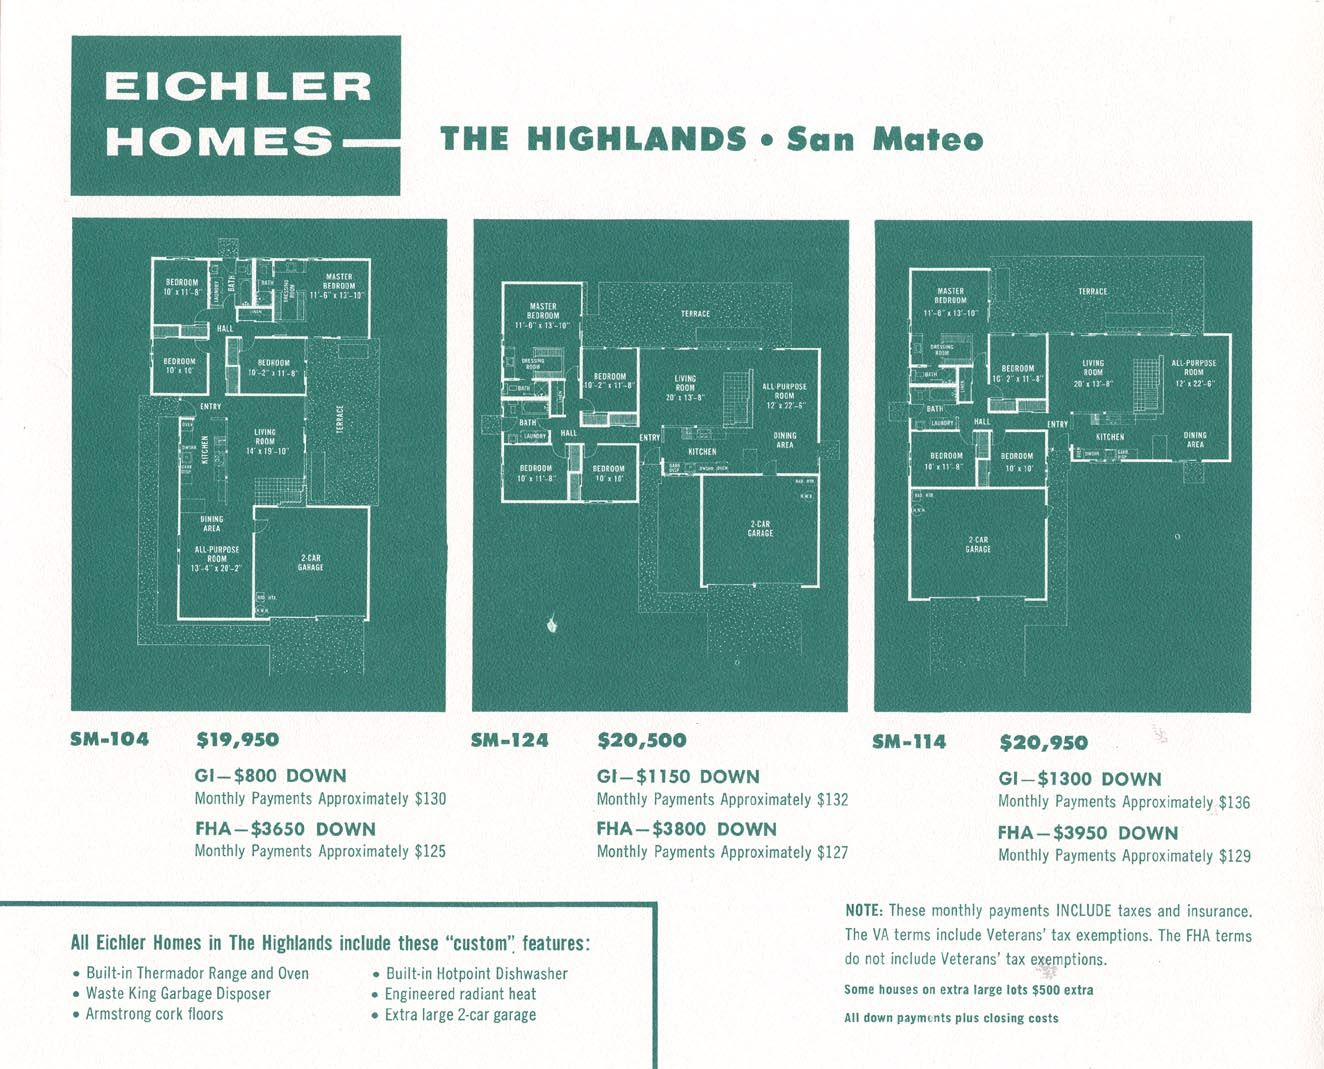 Floor Plans For Three Eichler Homes Eichler Homes